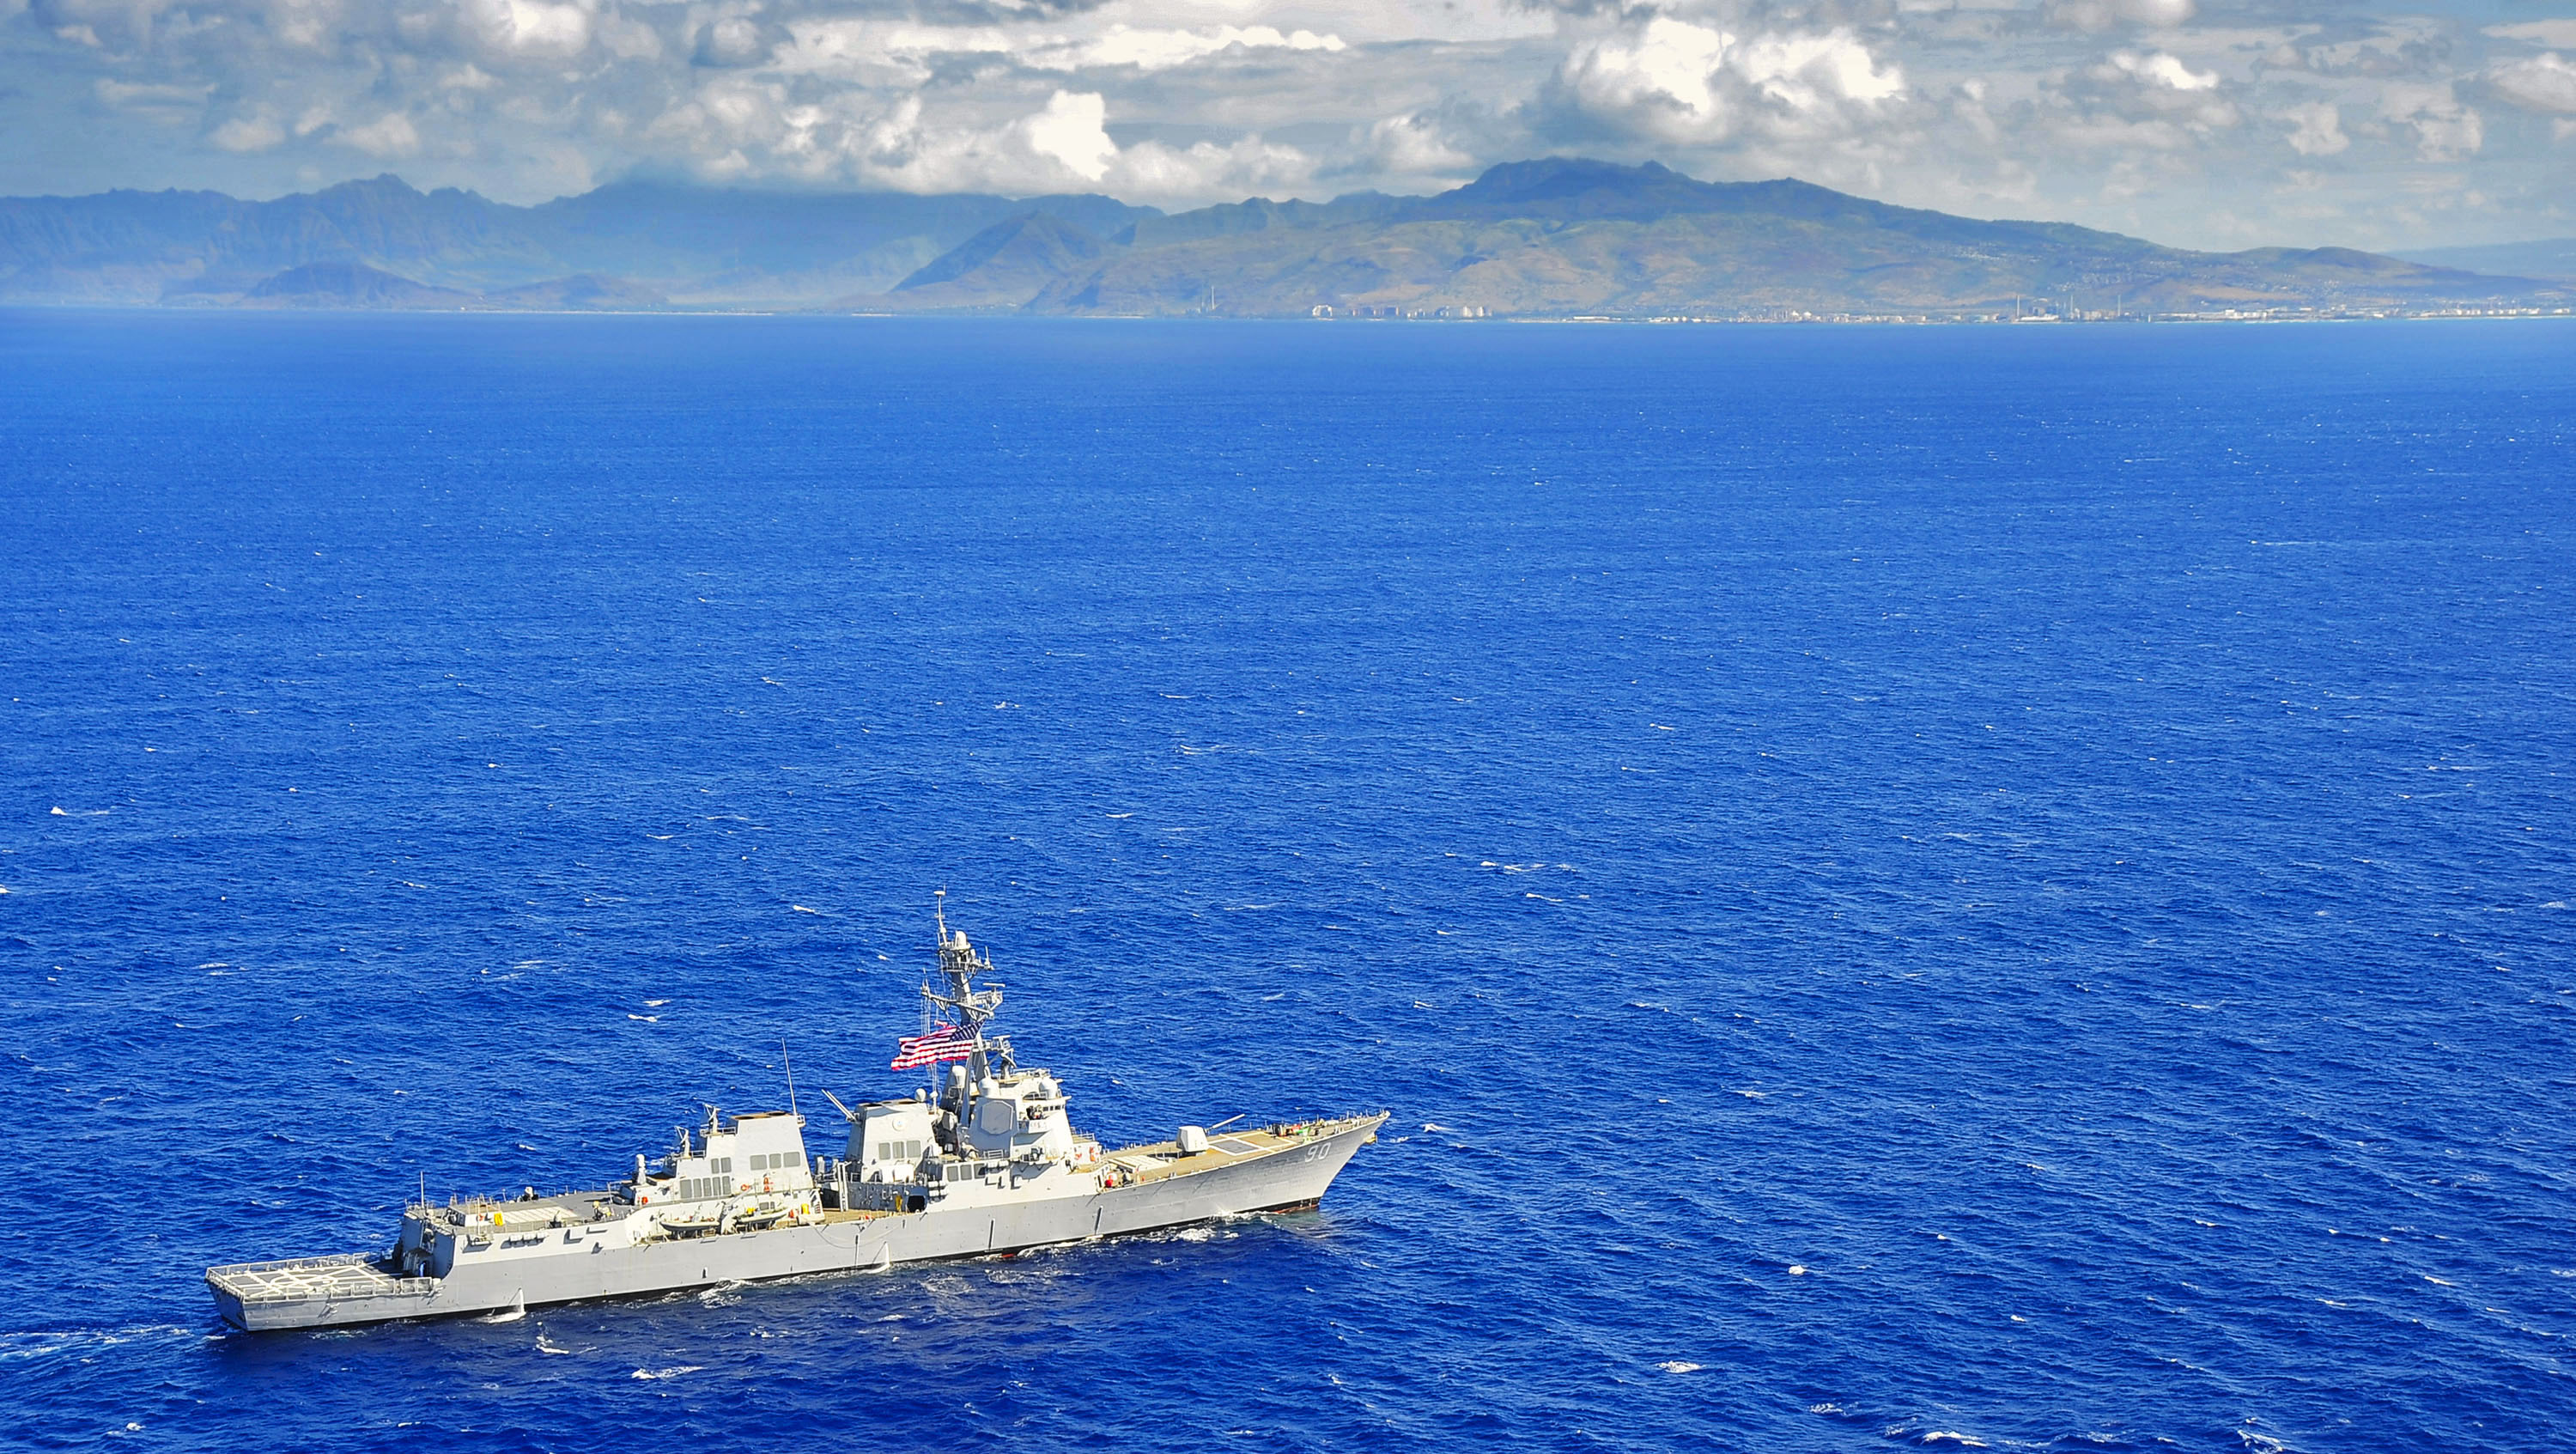 USS Chafee (DDG-90) maneuvers off the coast of Hawaii in 2014. US Navy Photo